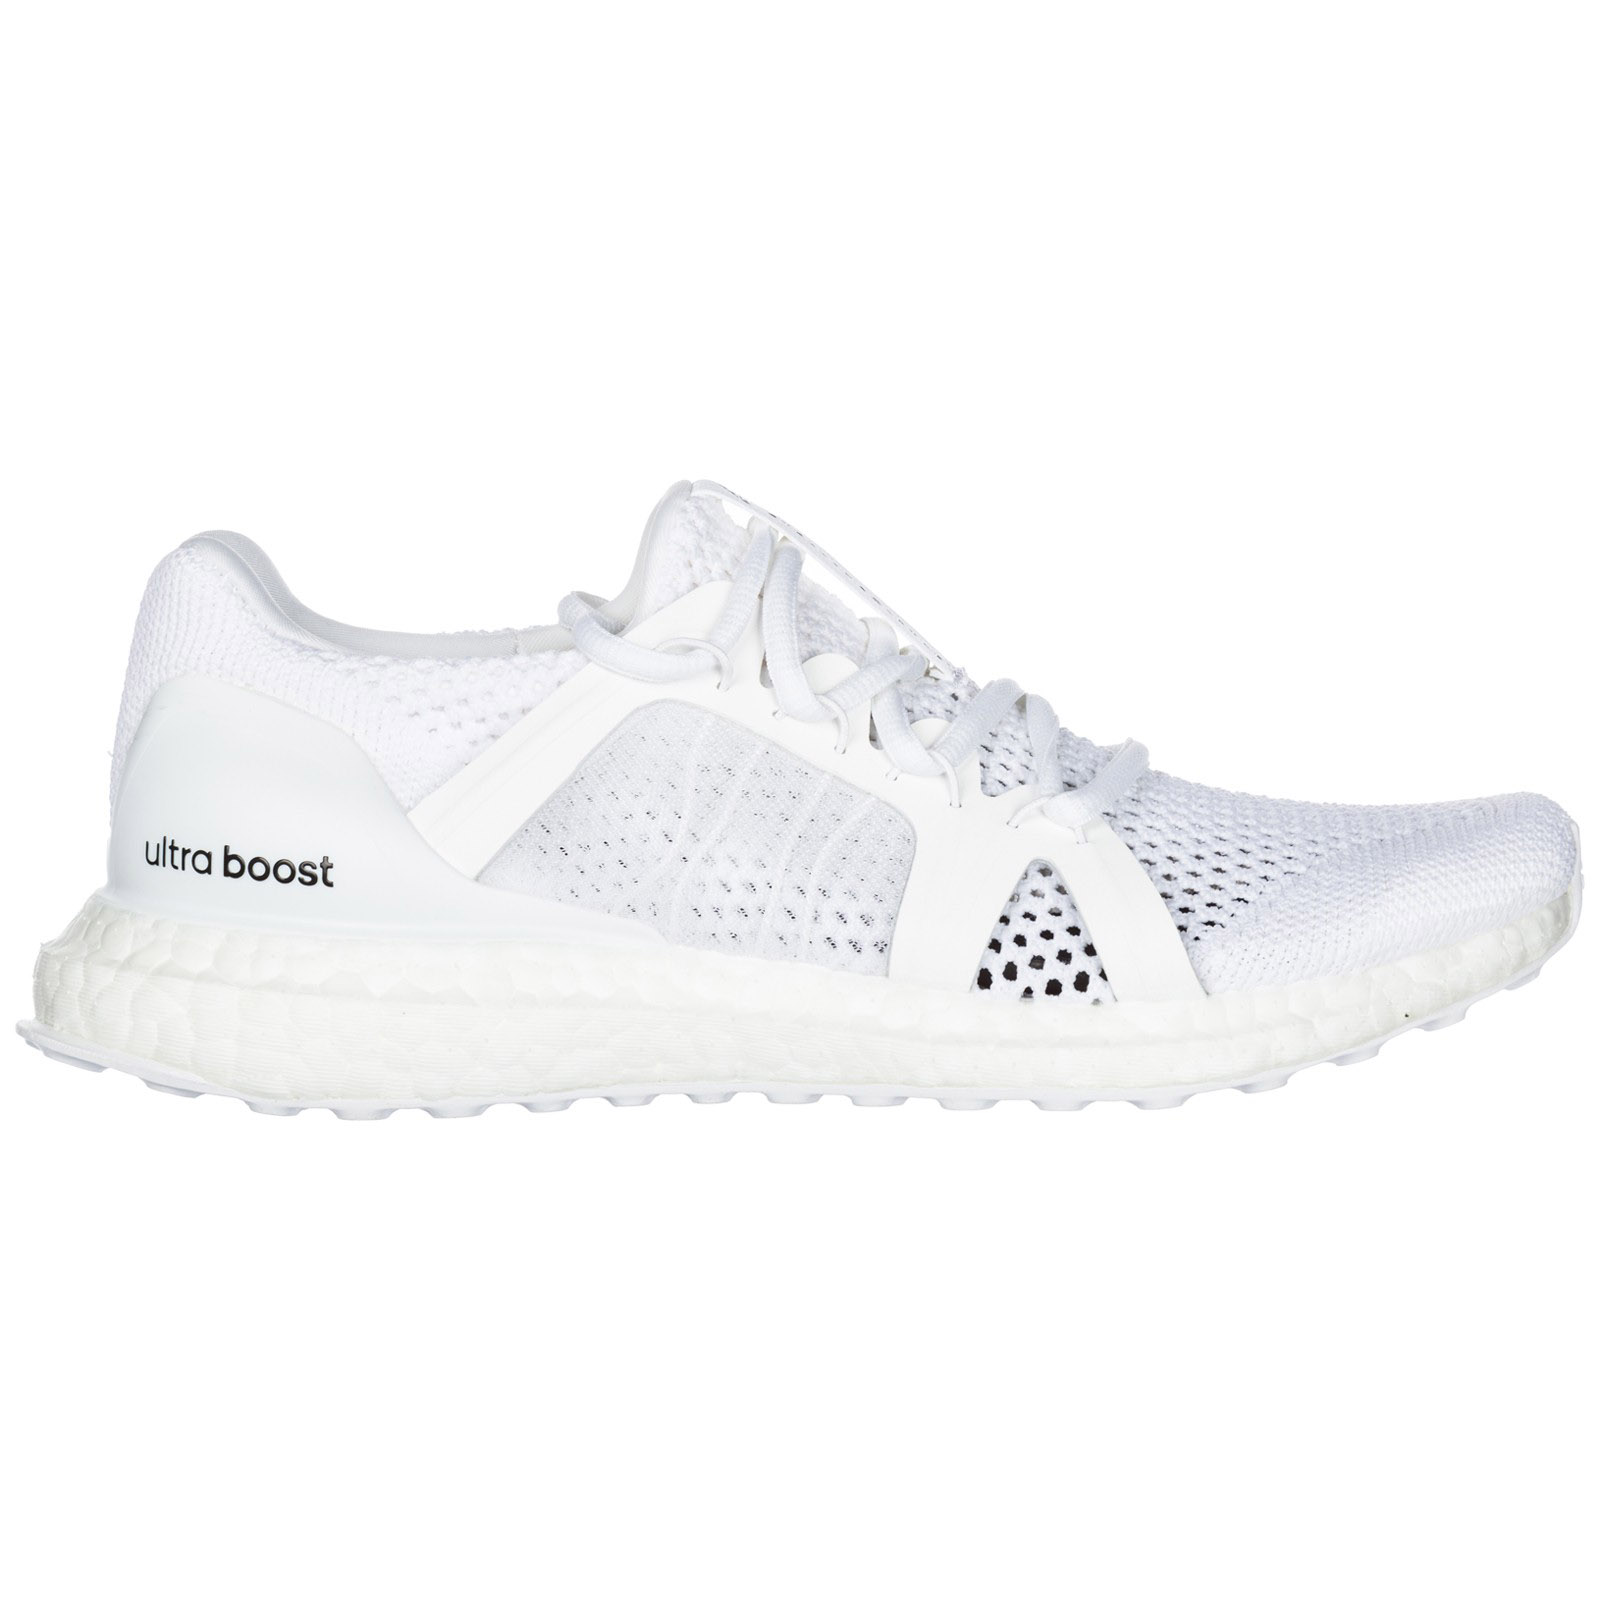 0bf89628d91a6 Adidas by Stella McCartney Women s shoes trainers sneakers ultraboost